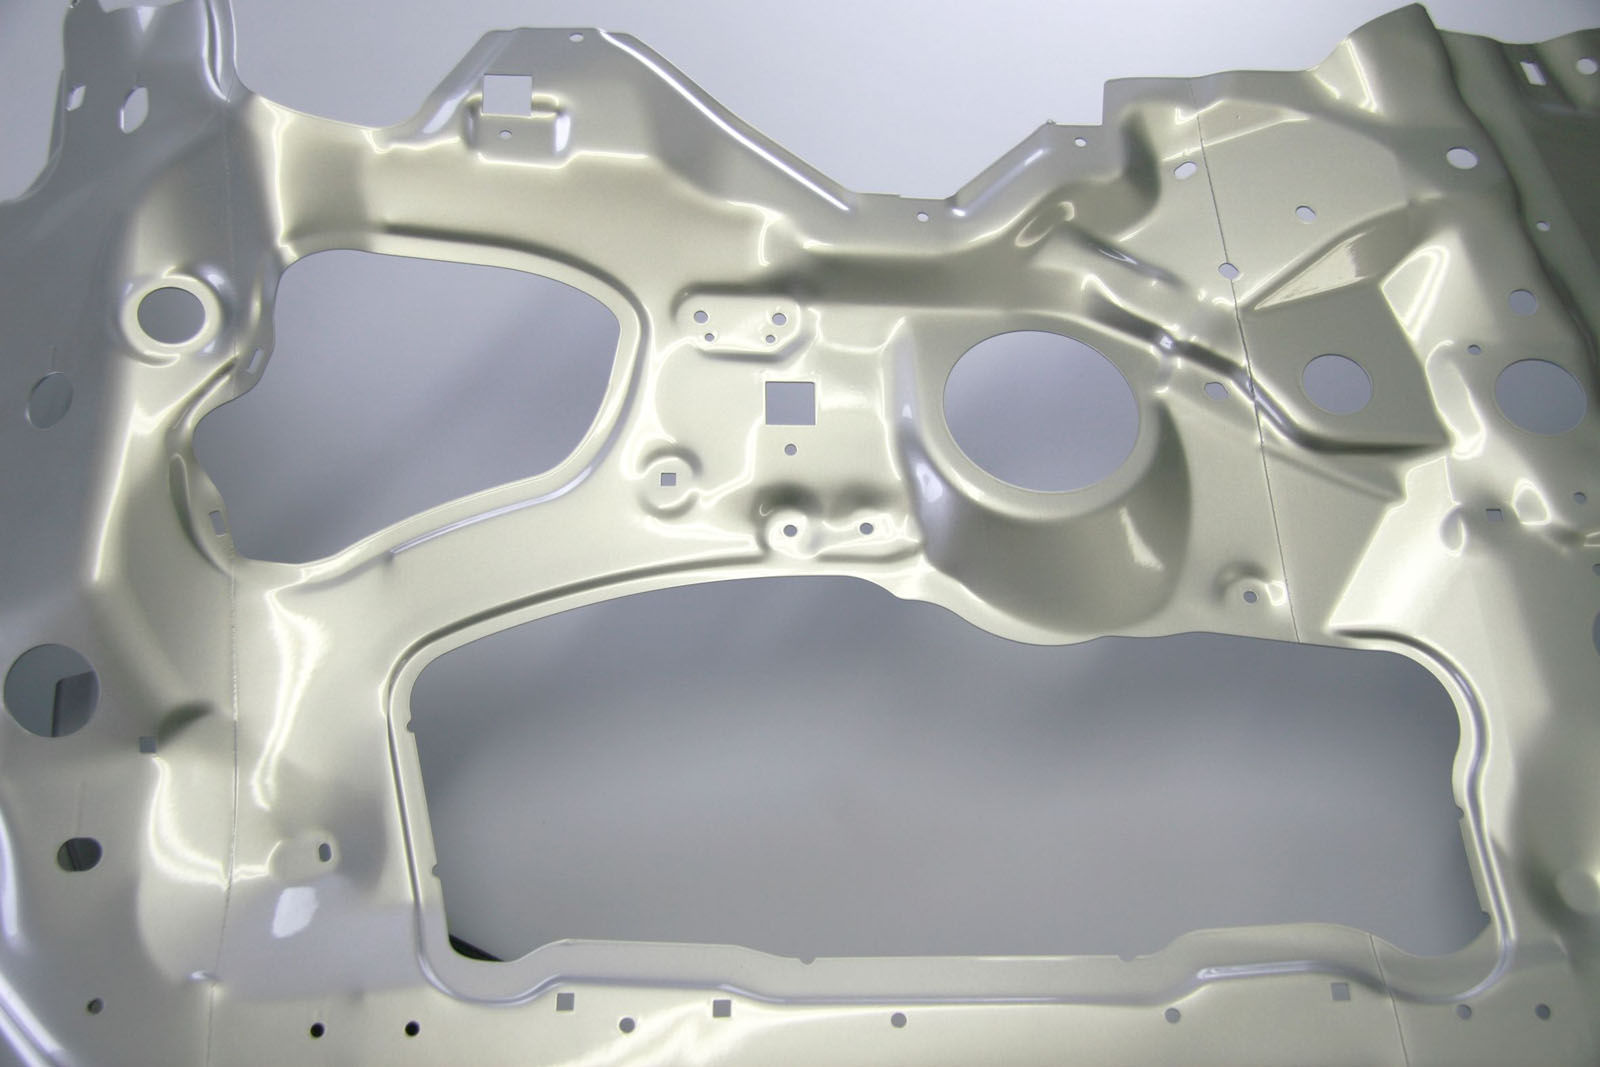 New Extrusion Method Could Make Magnesium Viable for Automotive Industry